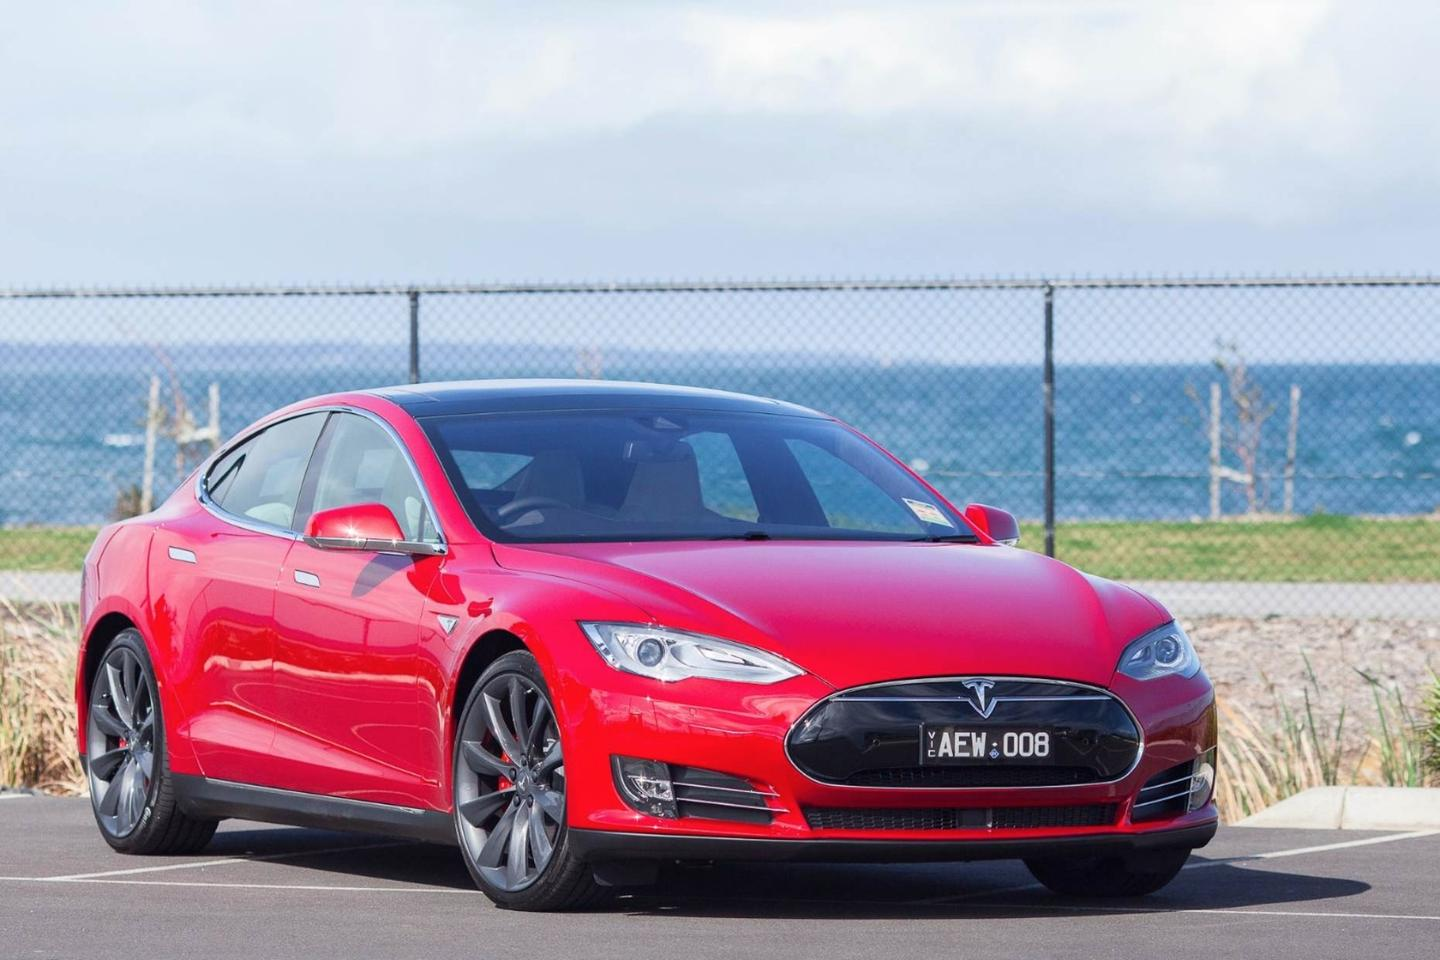 The Model S will now accelerate, brake, steer and change lanes for drivers